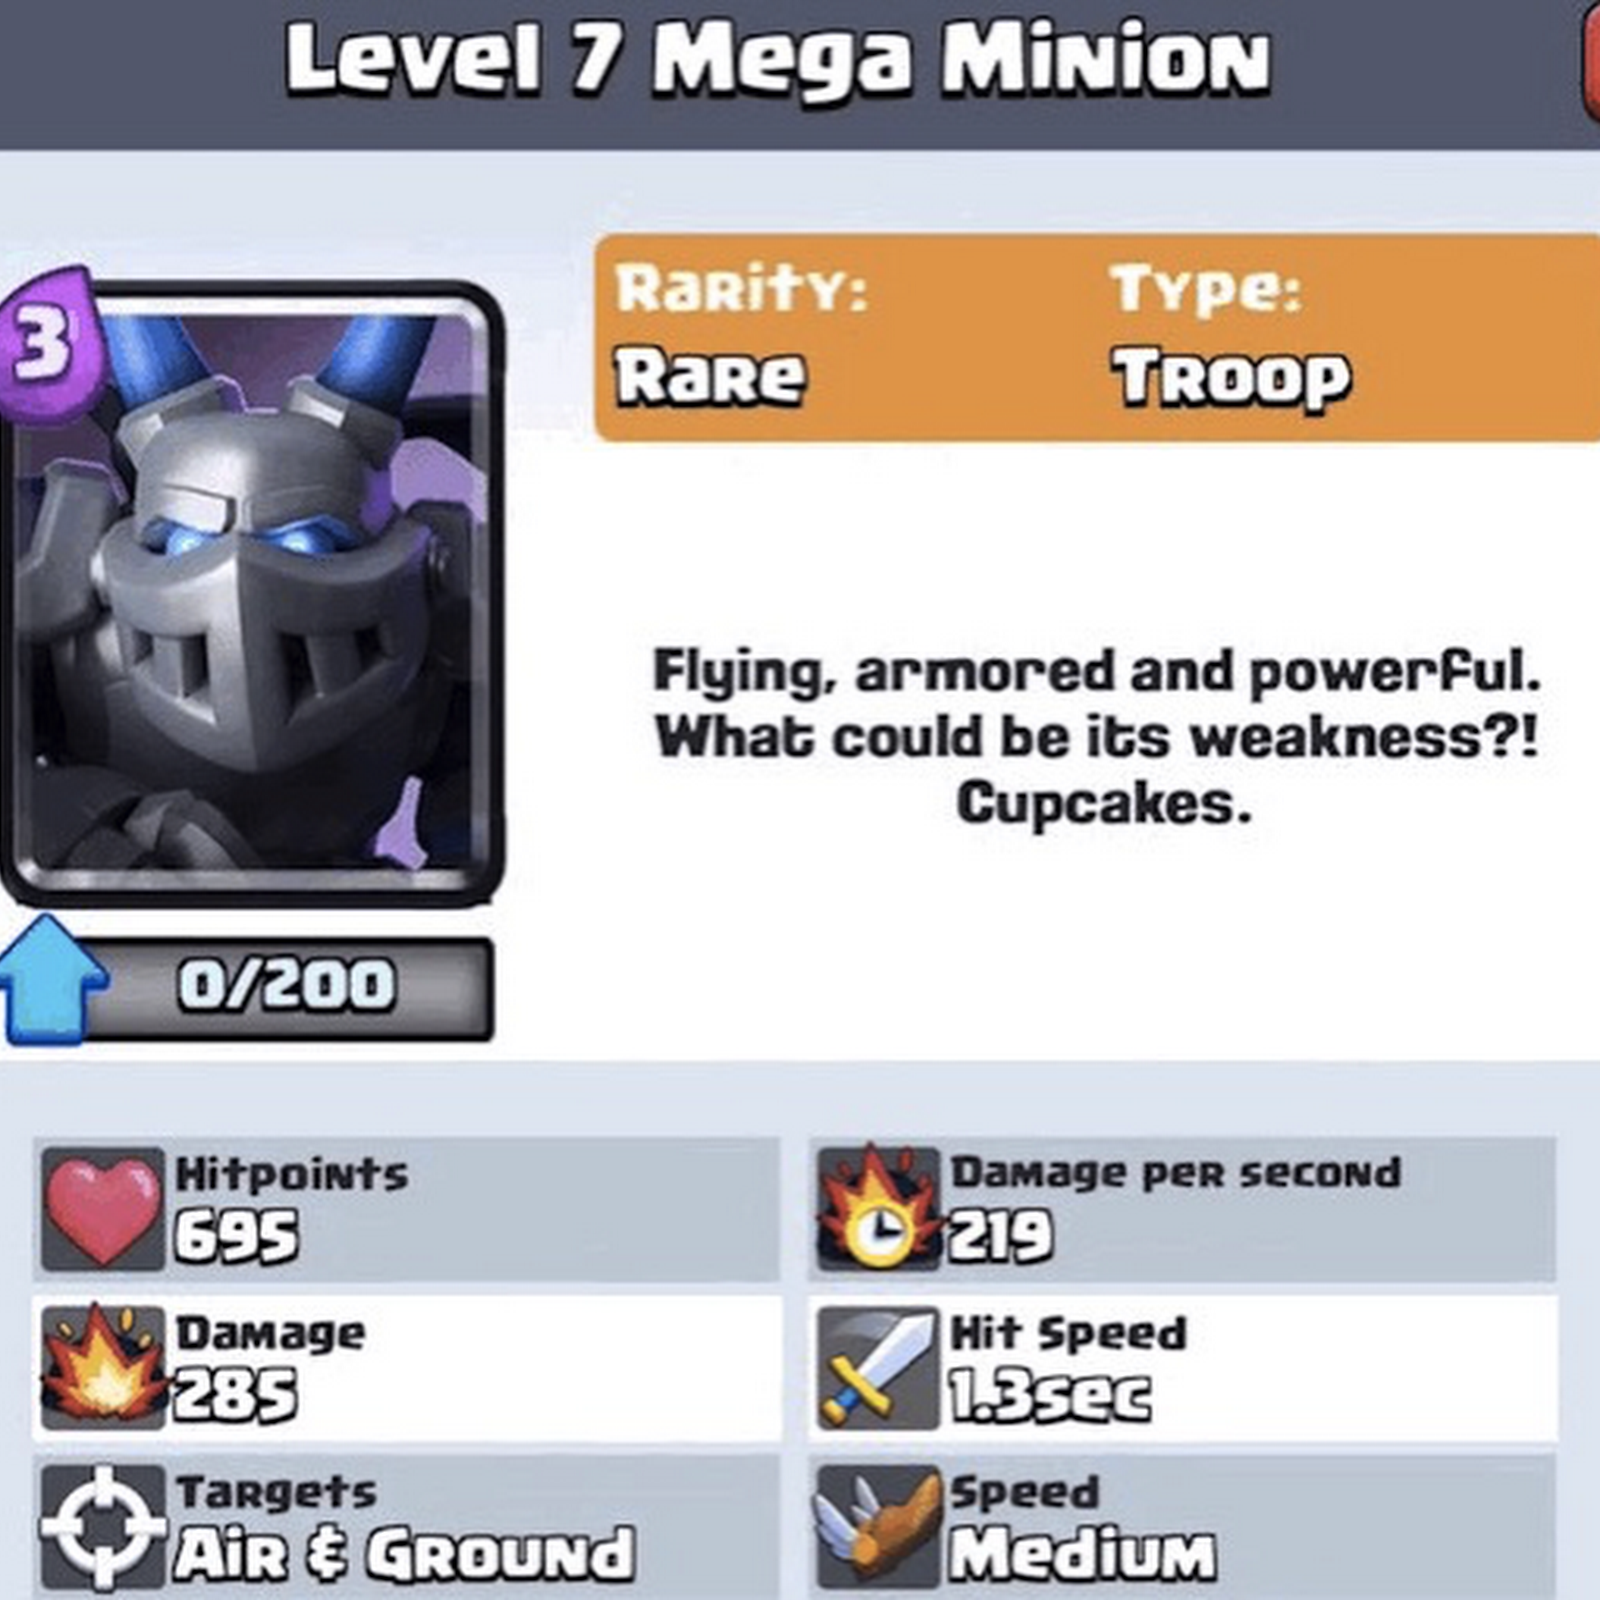 Mega Minion clash royale card 19 Sept 2016 Update.